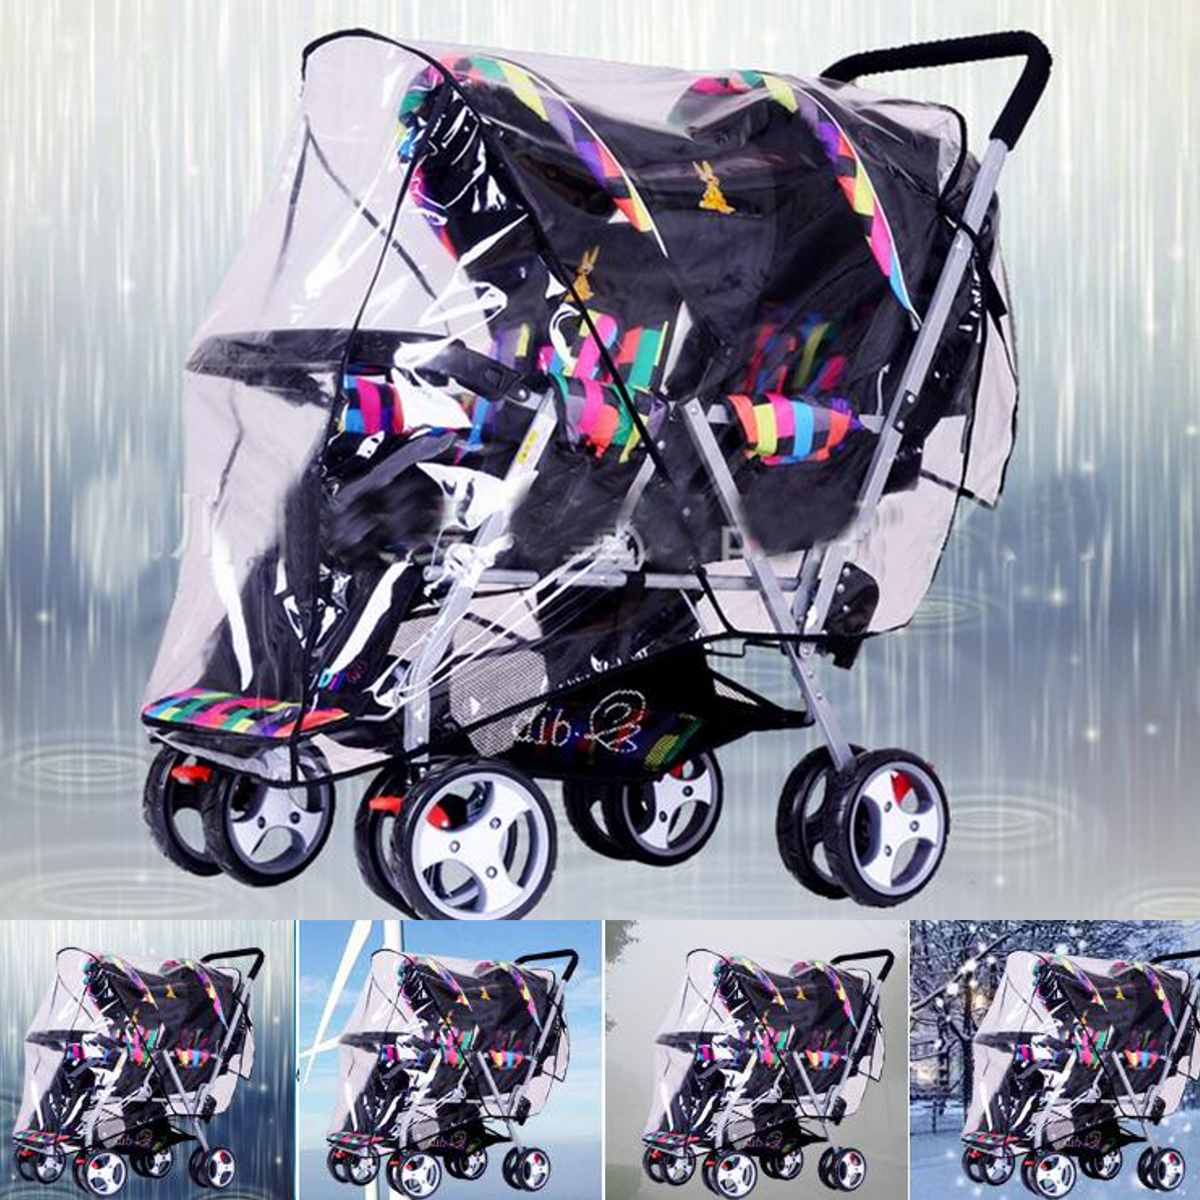 Clear Waterproof Stroller Rain Cover Weather Pram Baby Infant Double Pushchair Wind Shield Rain Covers Outdoors Rain Gear Canopy|Rain Covers| |  - title=